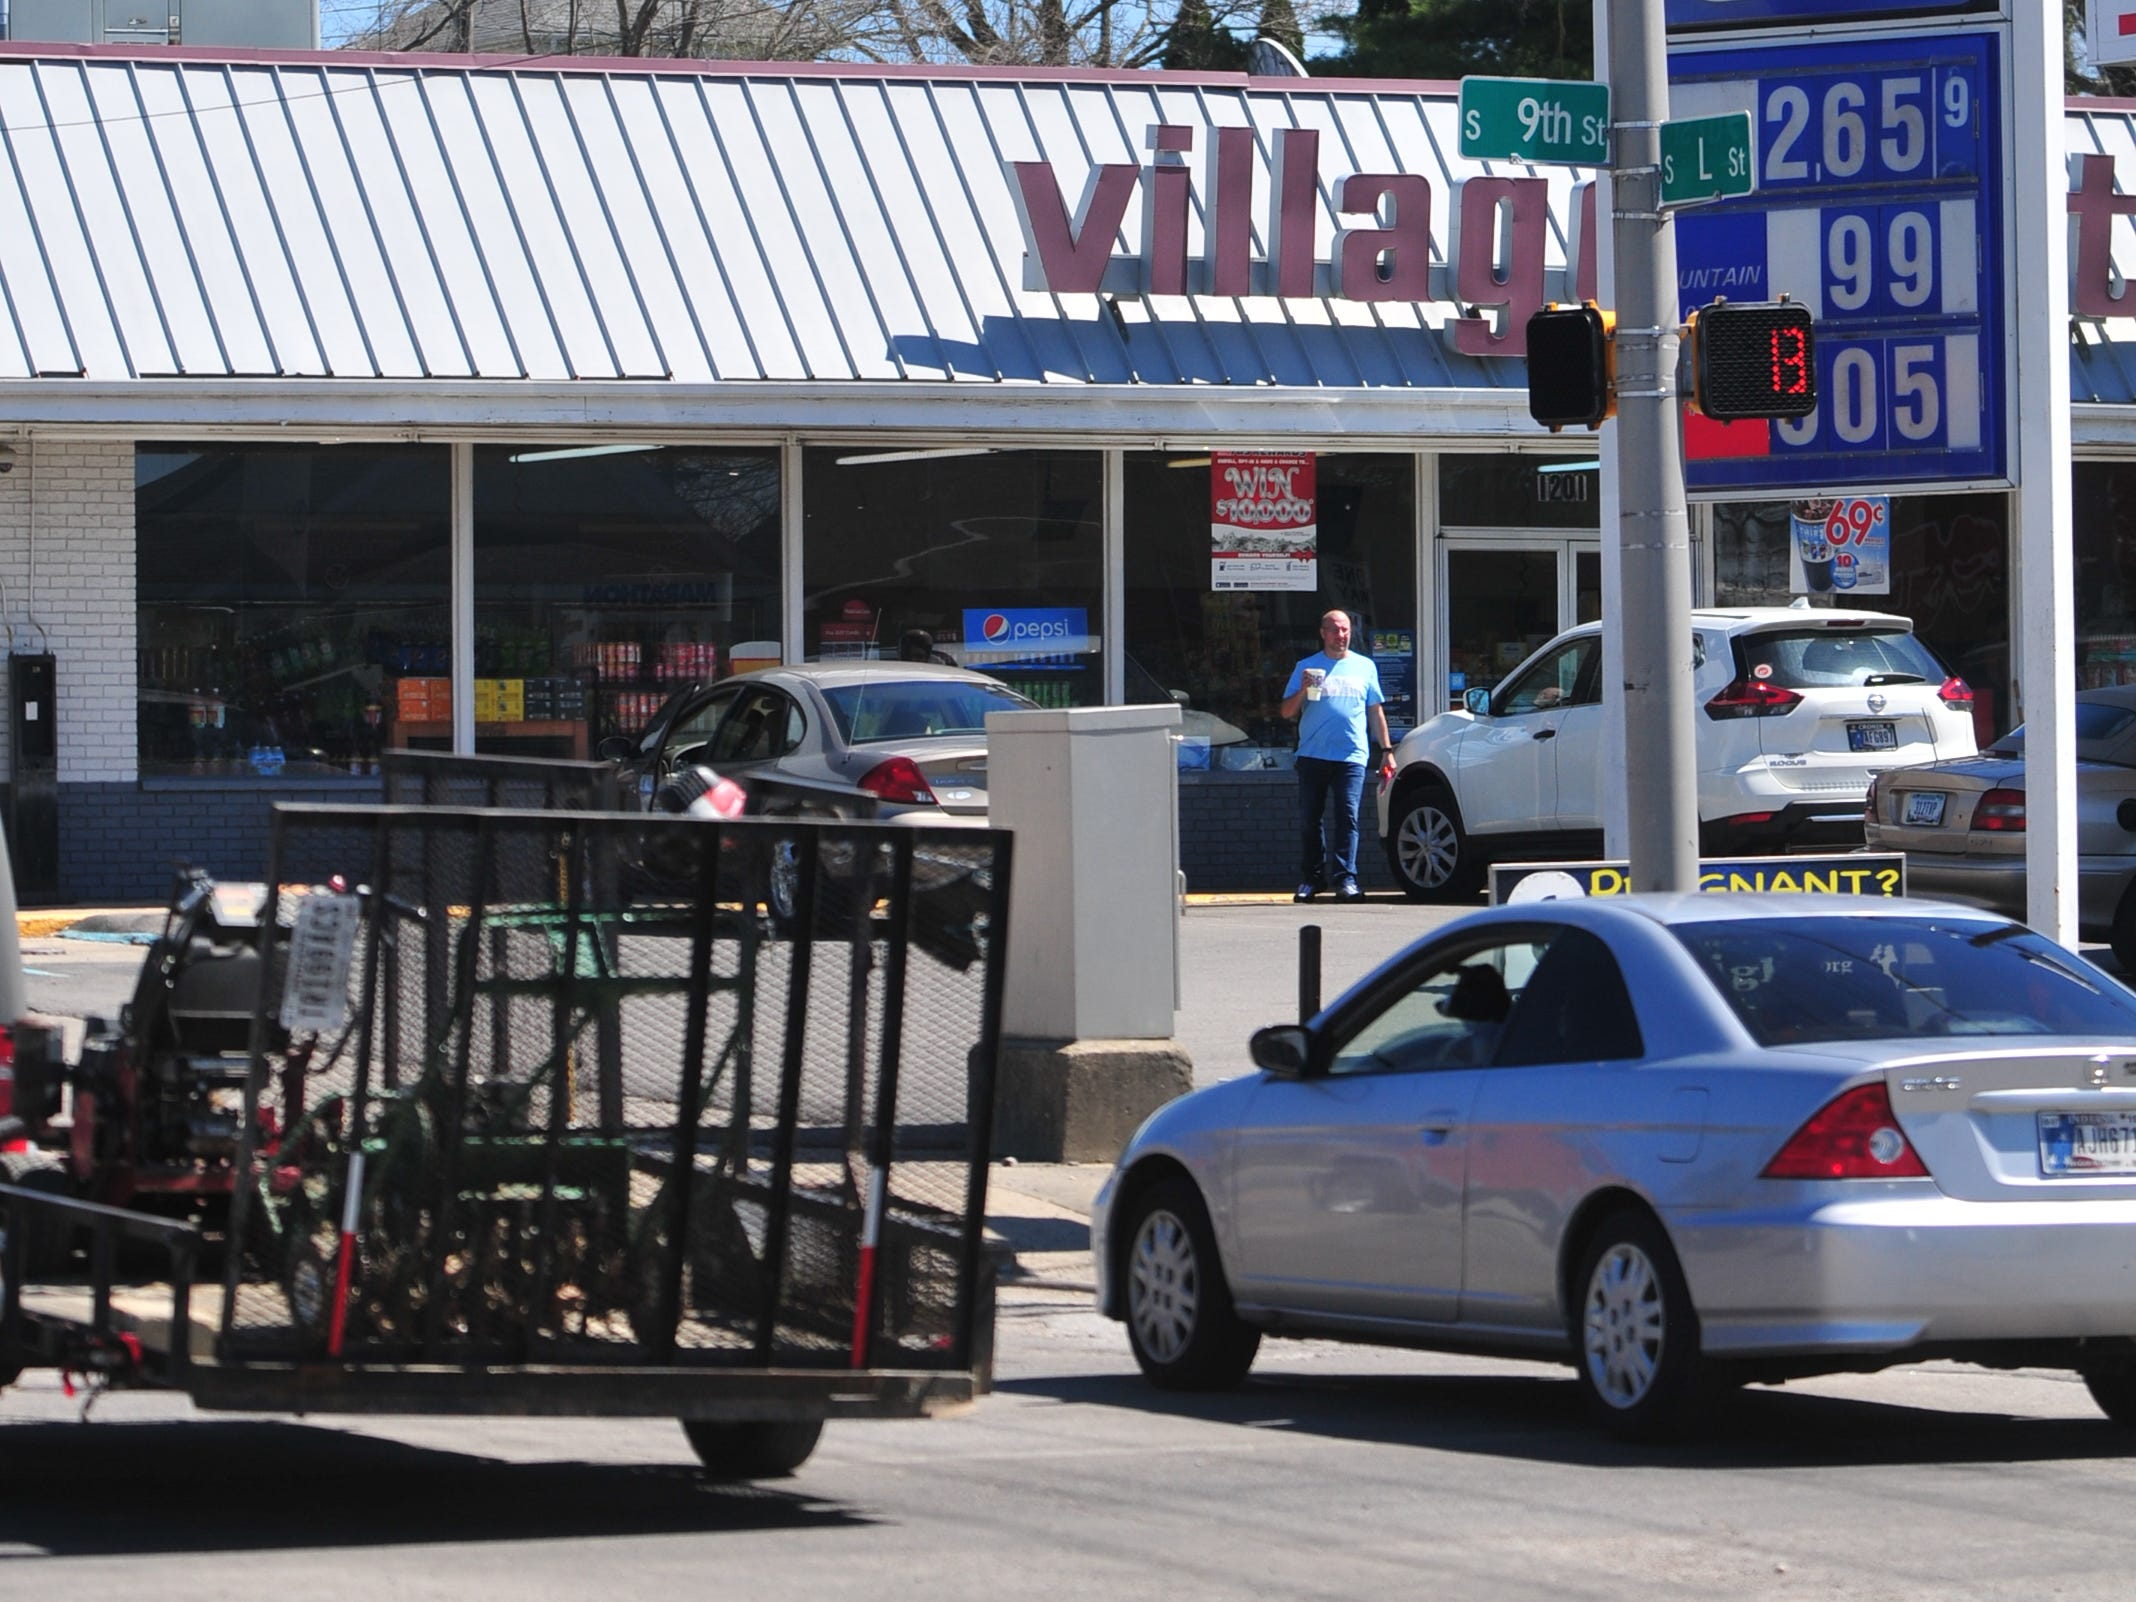 Richmond Police Department reported 10 accidents during 2018 at the intersection of South Ninth and South L streets.